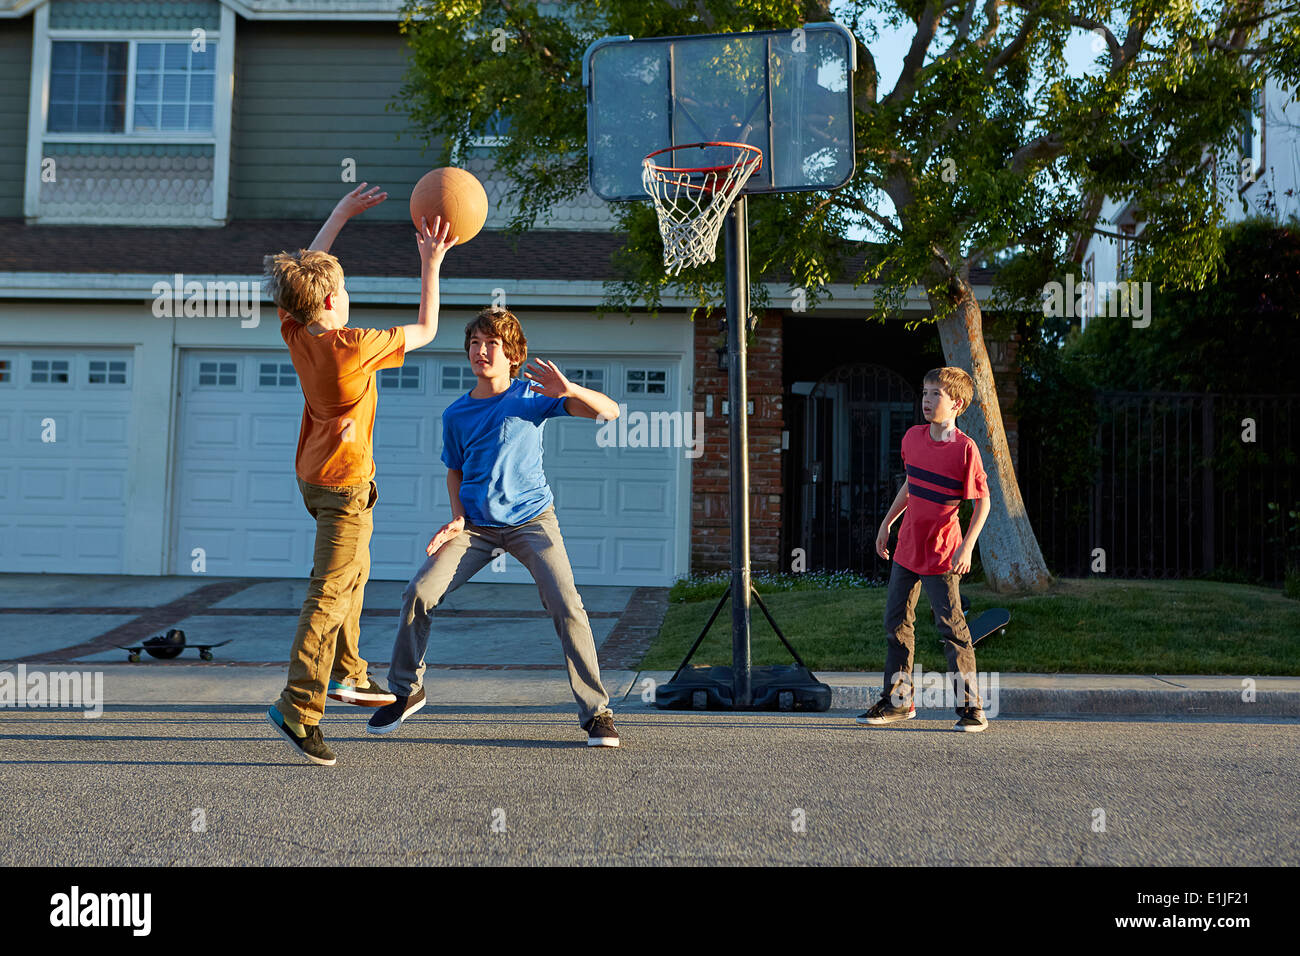 Boys playing basketball outside house - Stock Image